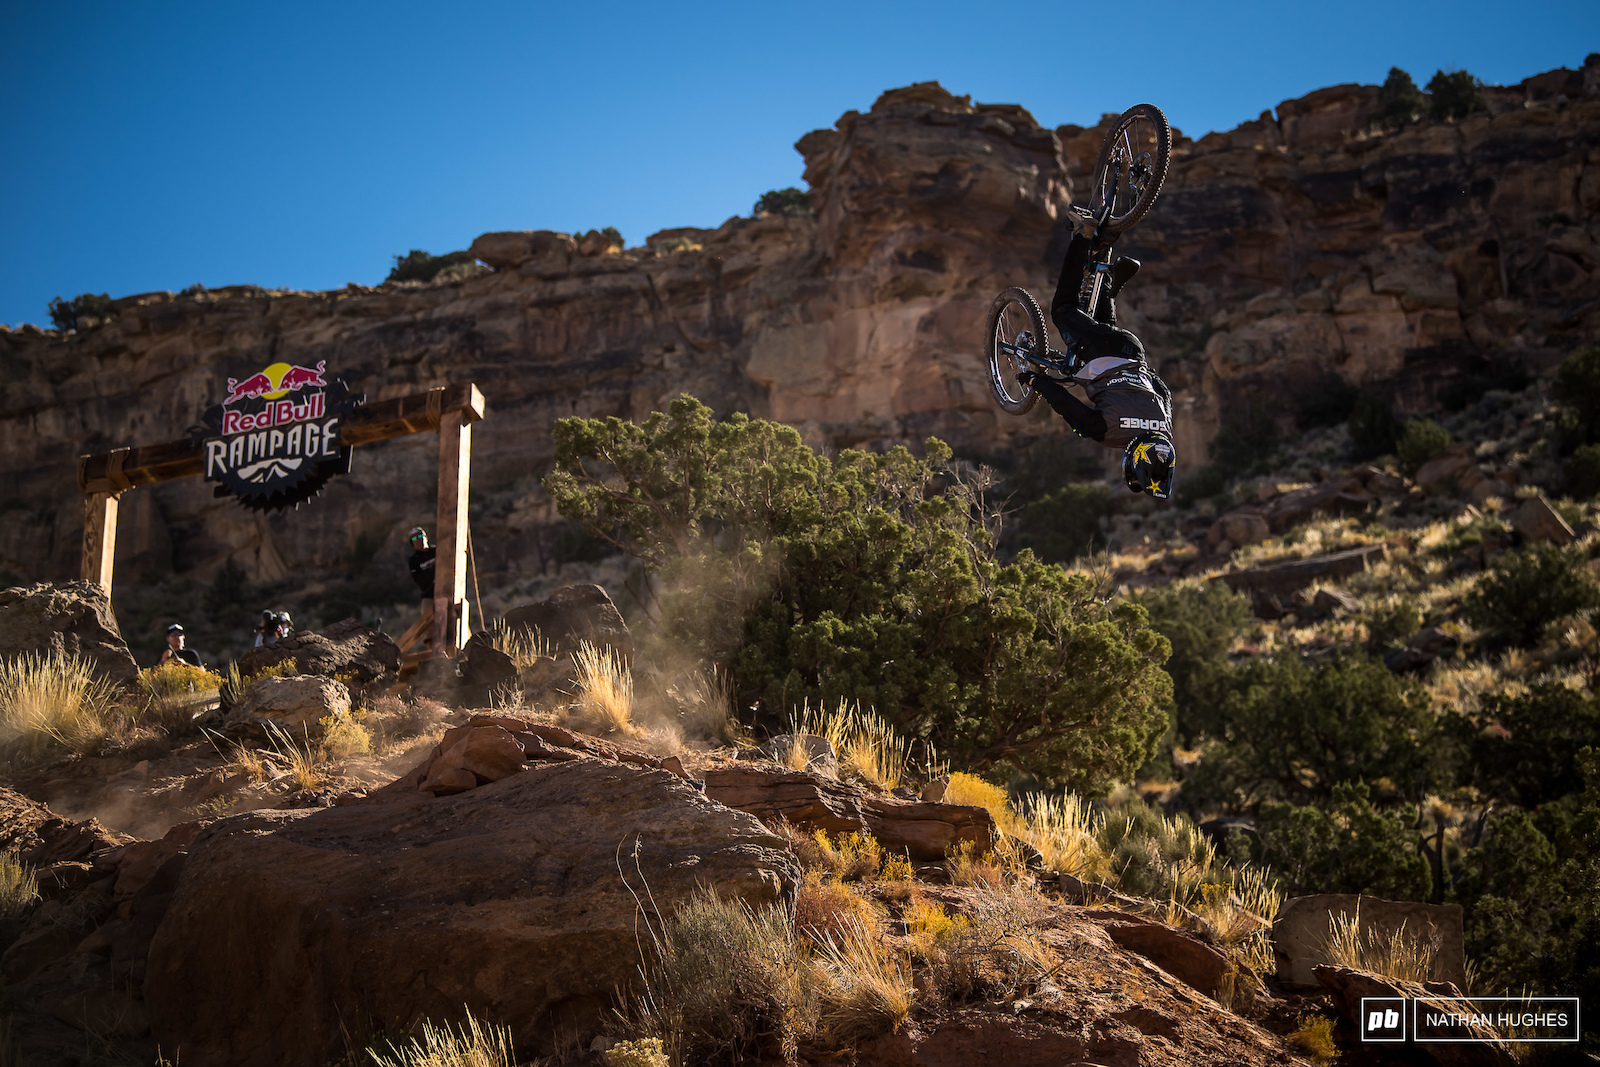 No cigar this year for Sorge who started strong but ended his Rampage hopes front wheel casing after a tuck-no-hander yards from the finish corral.